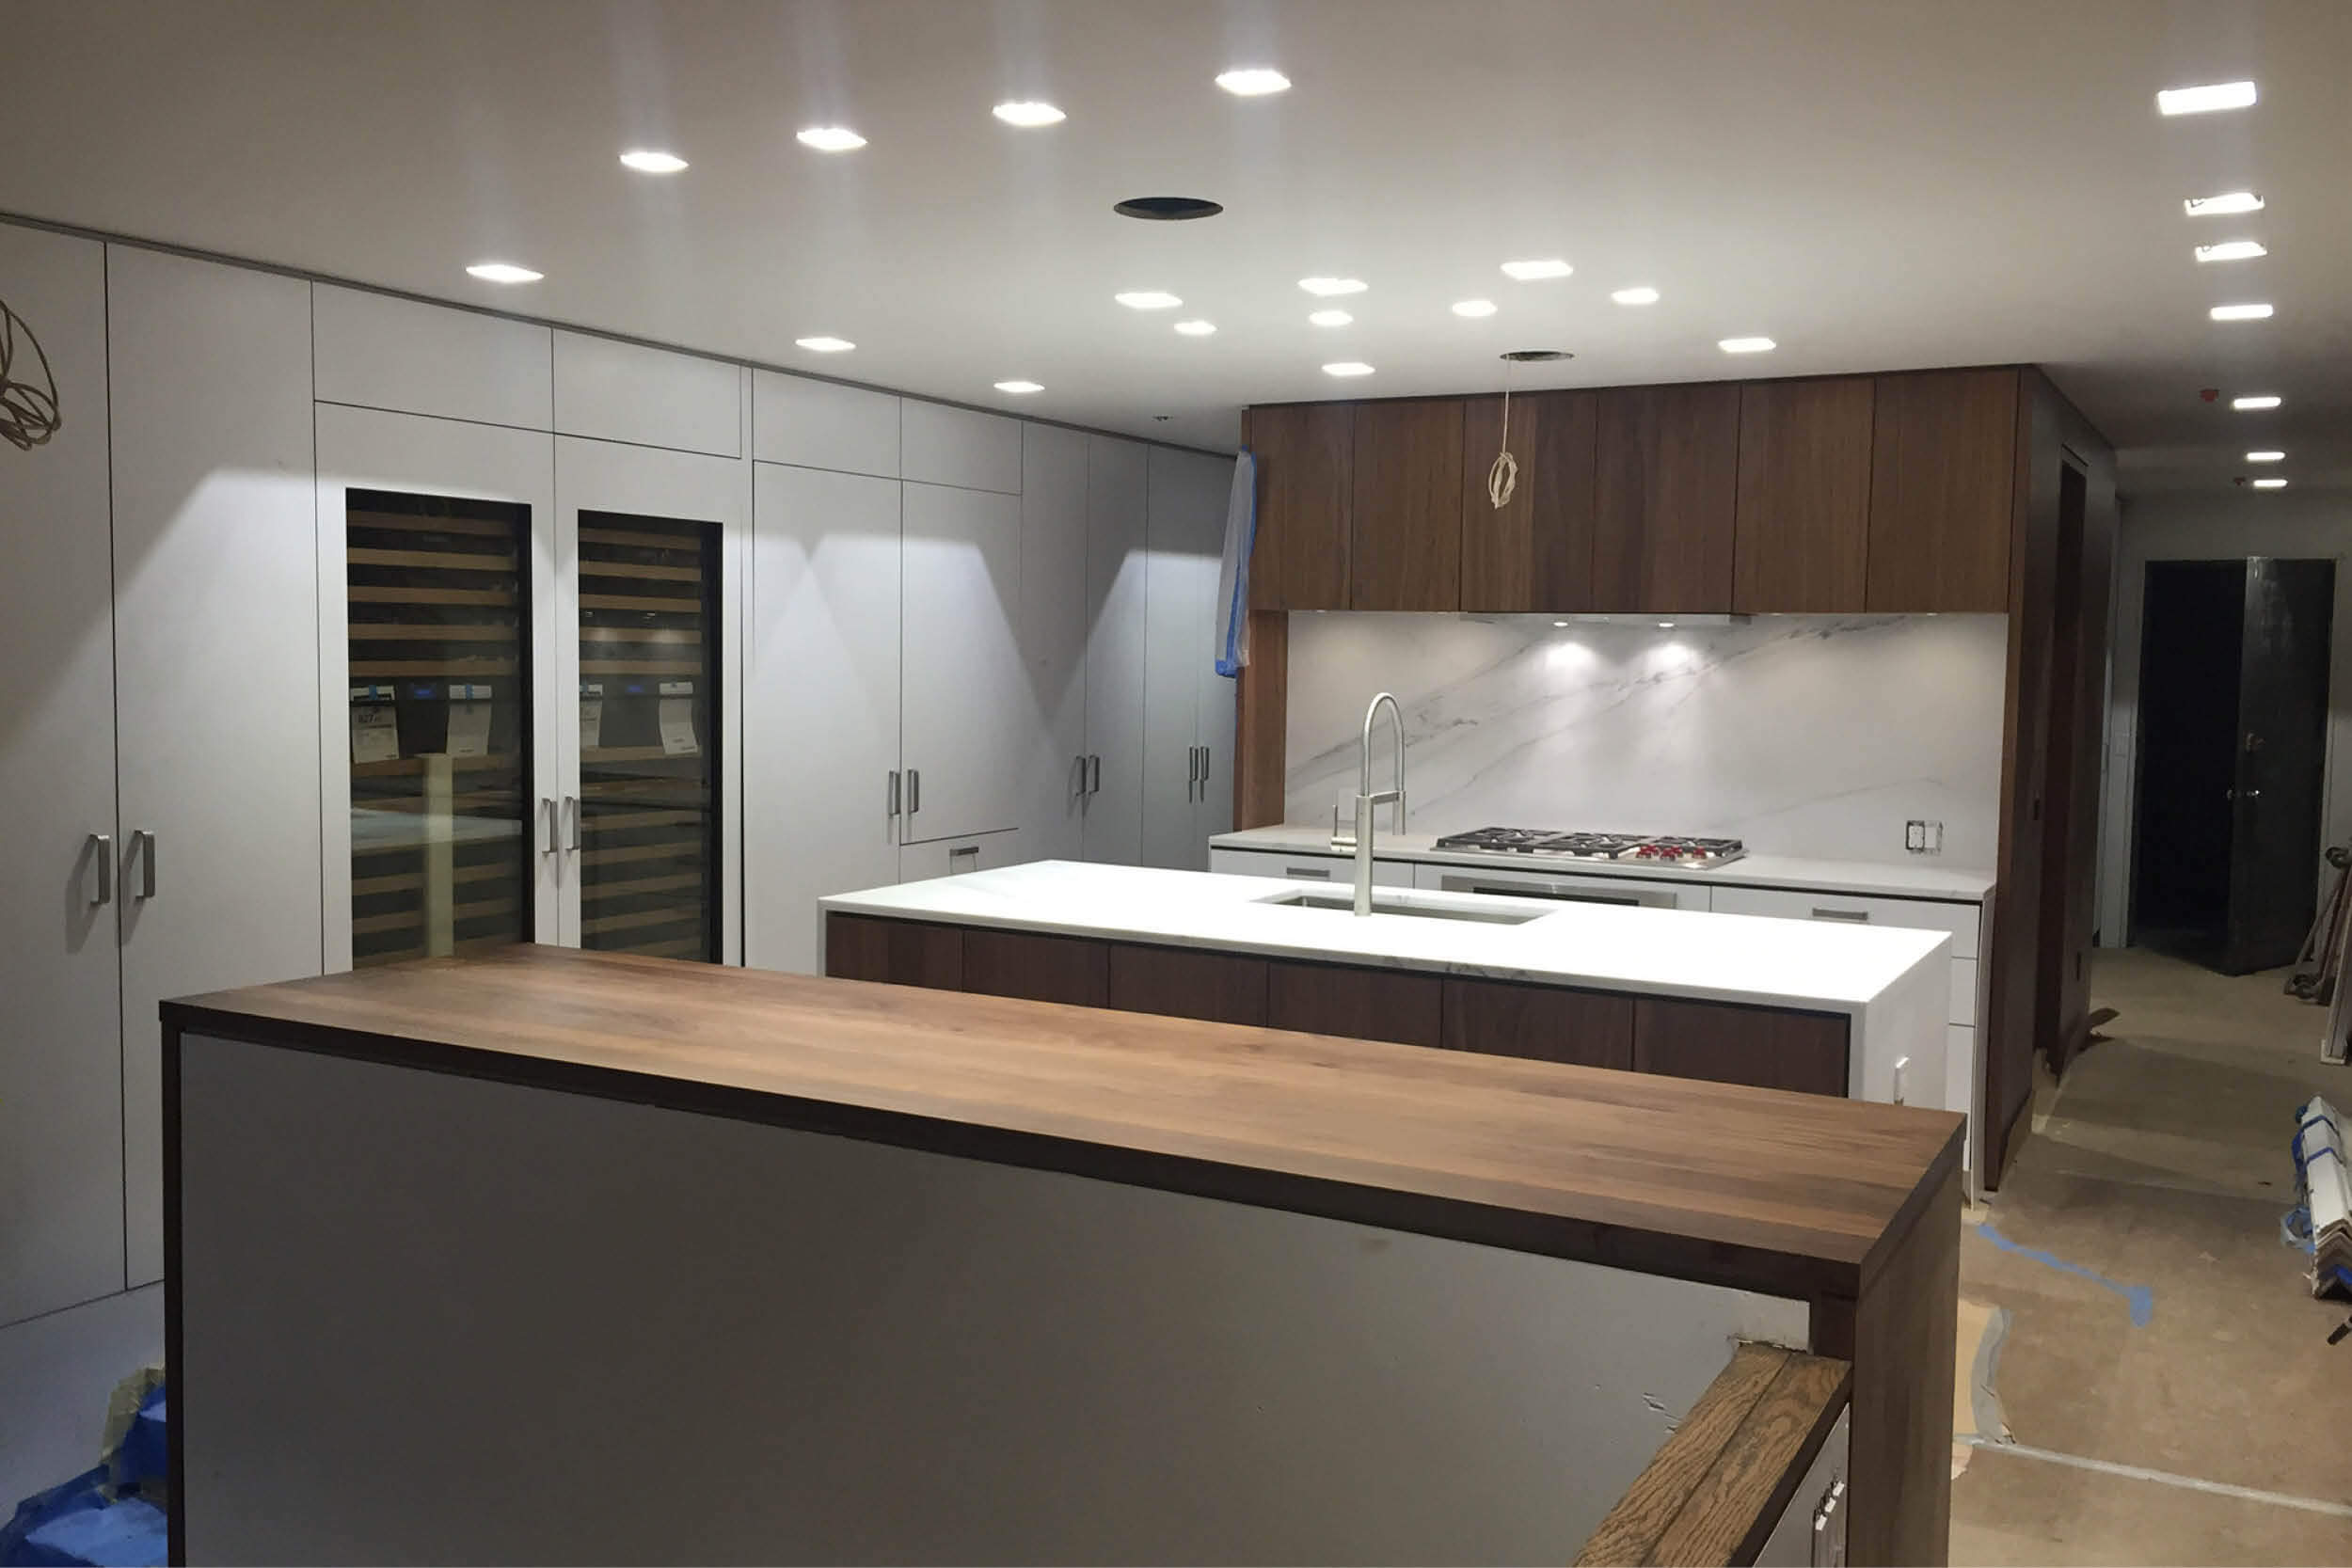 res4-resolution-4-architecture-modern-residential-upper-west-side-townhouse-construction-update2.jpg